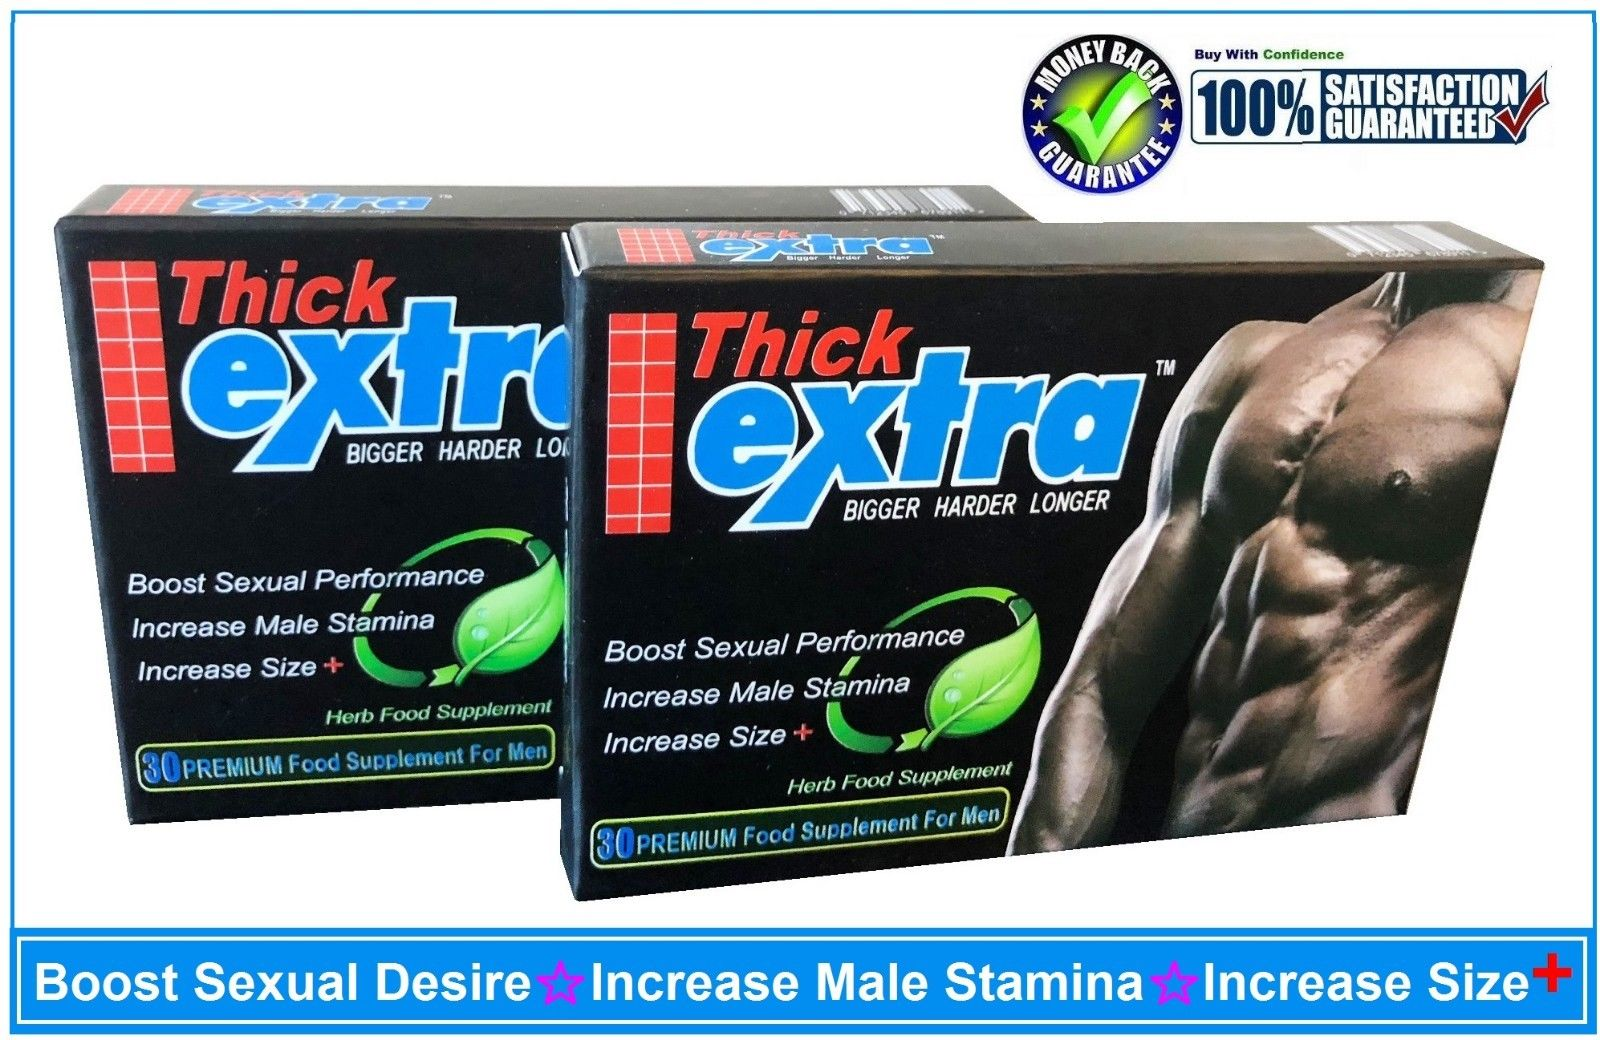 EXTRA THICK-PENIS ENLARGEMENT PILLS,BIGGER, LONGER & THICKER PENIS-60 CAPSULES